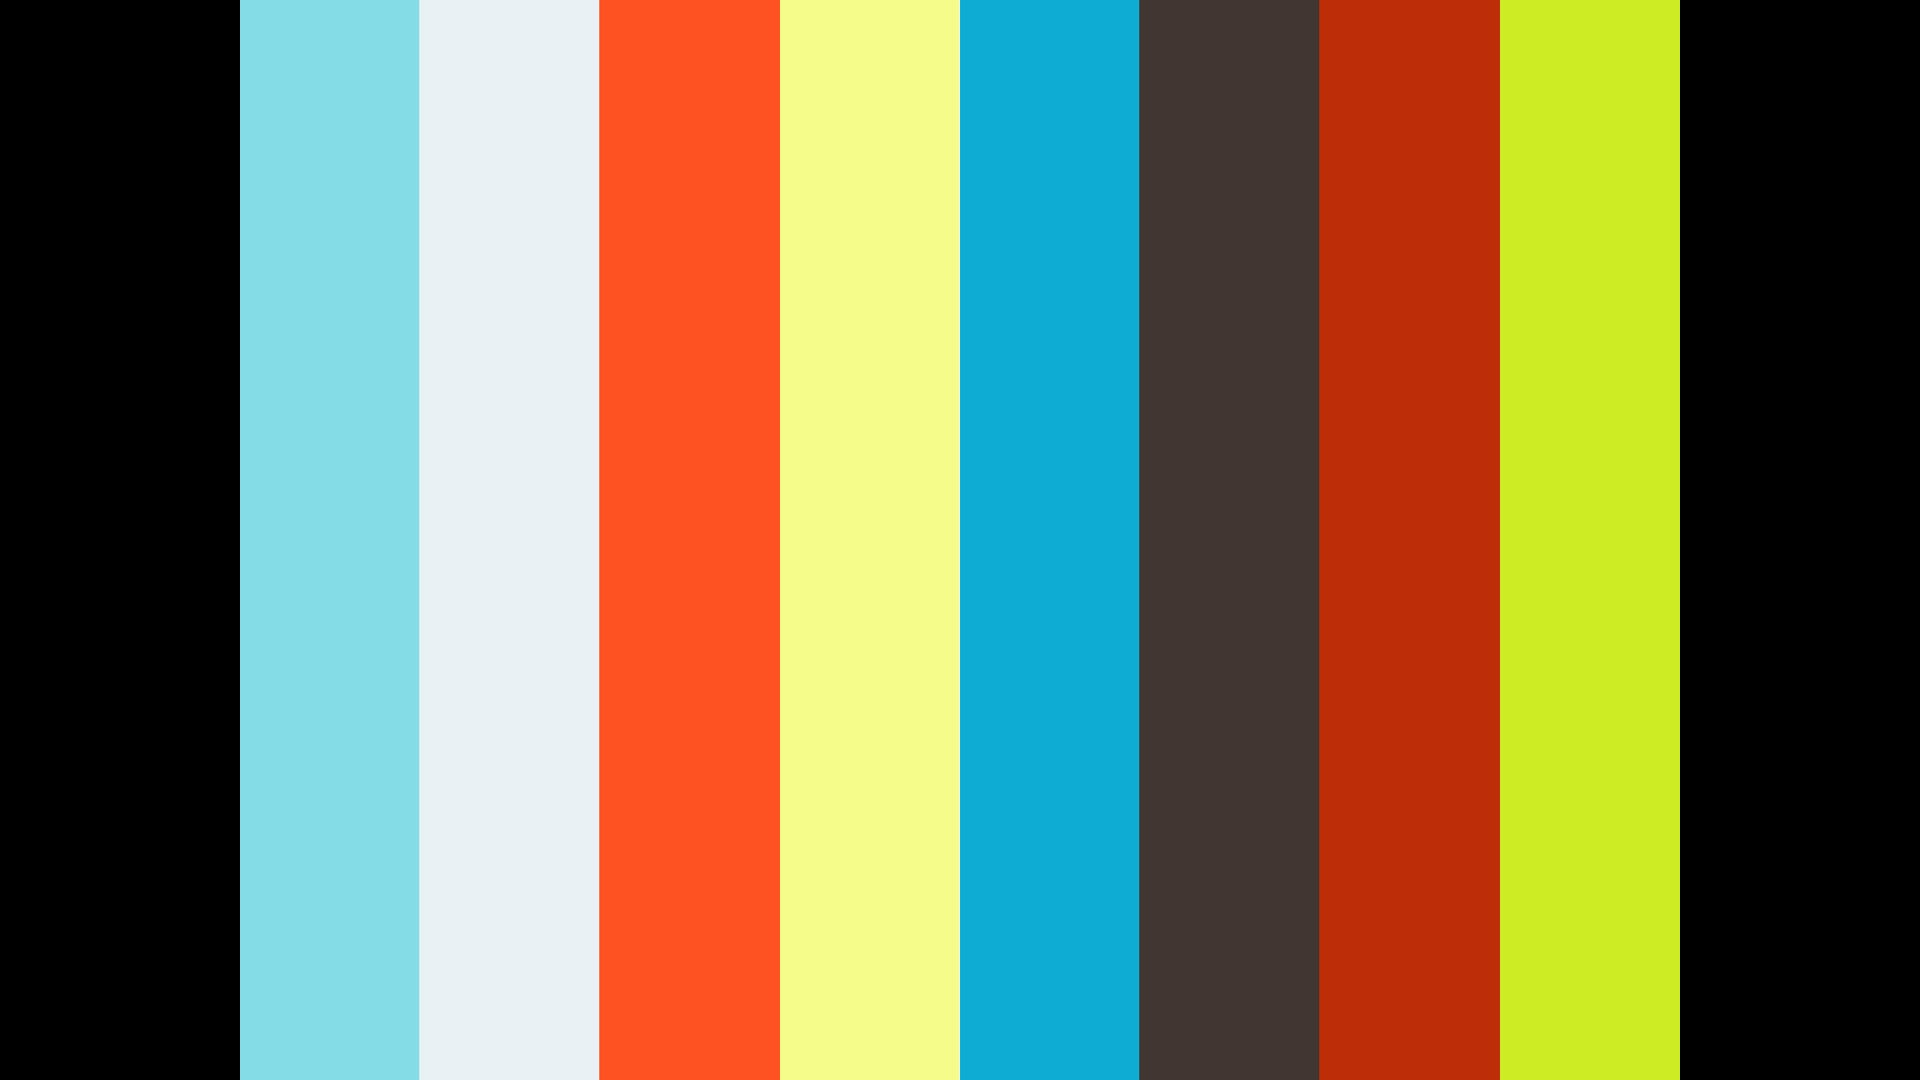 Keynote by Simon Njami [3]